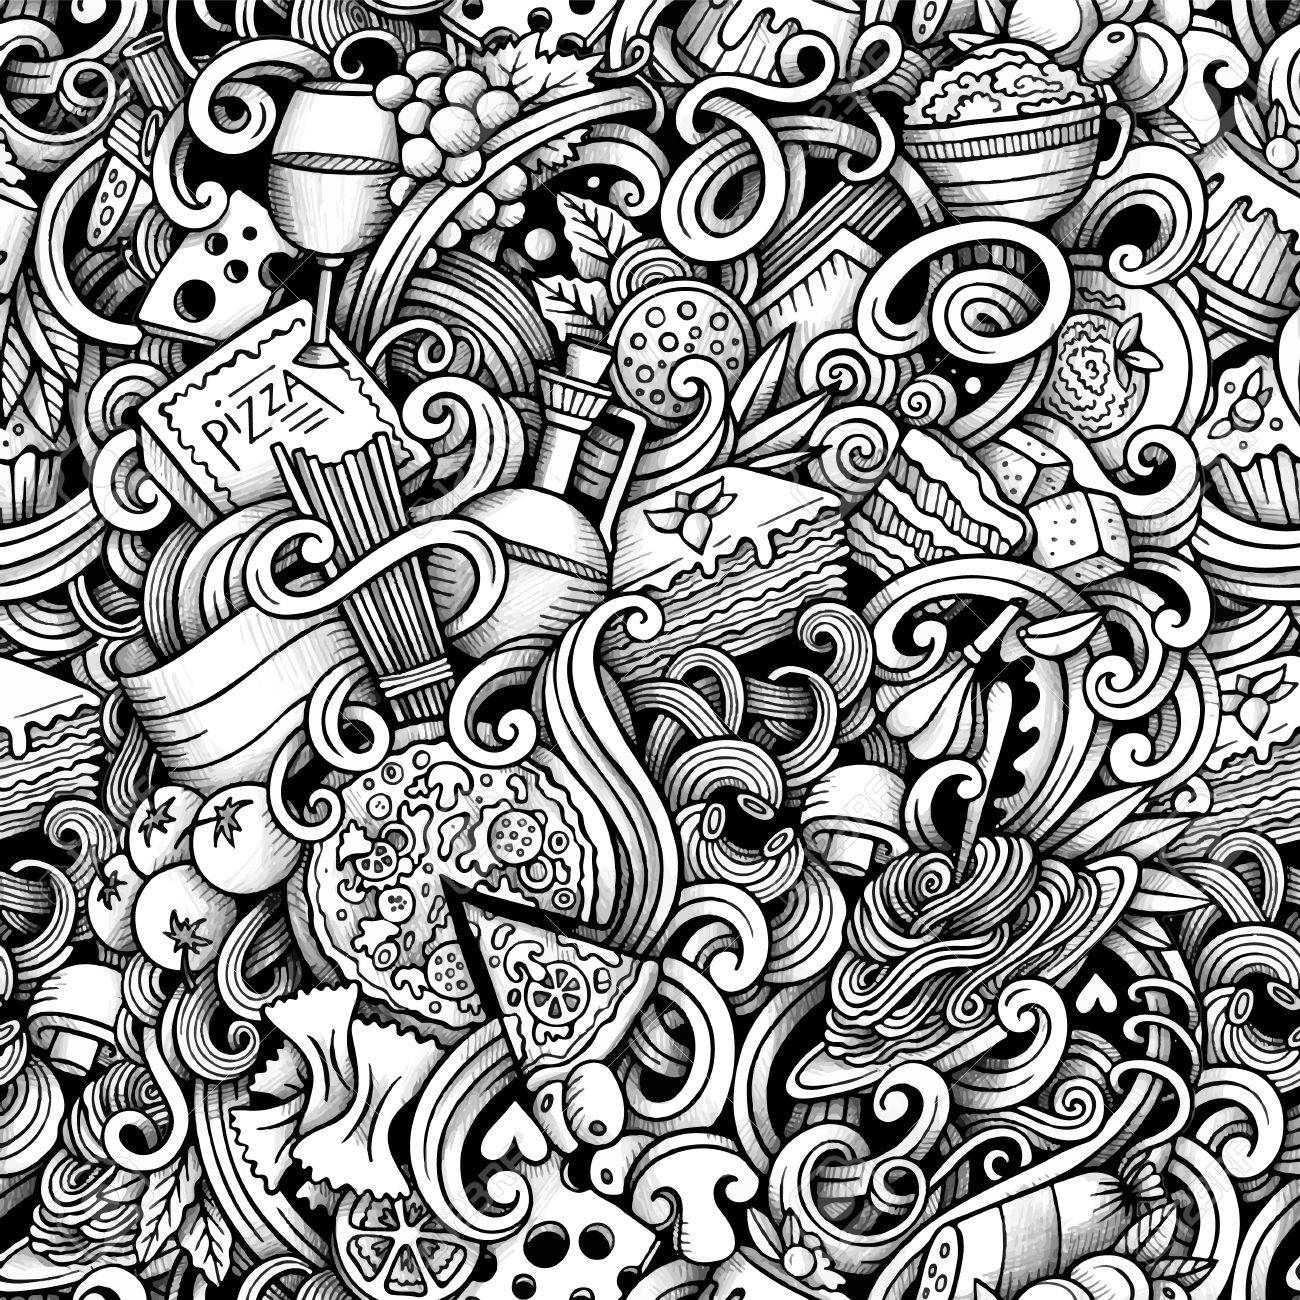 1300x1300 Cartoon Hand Drawn Italian Food Doodles Seamless Pattern. Trace